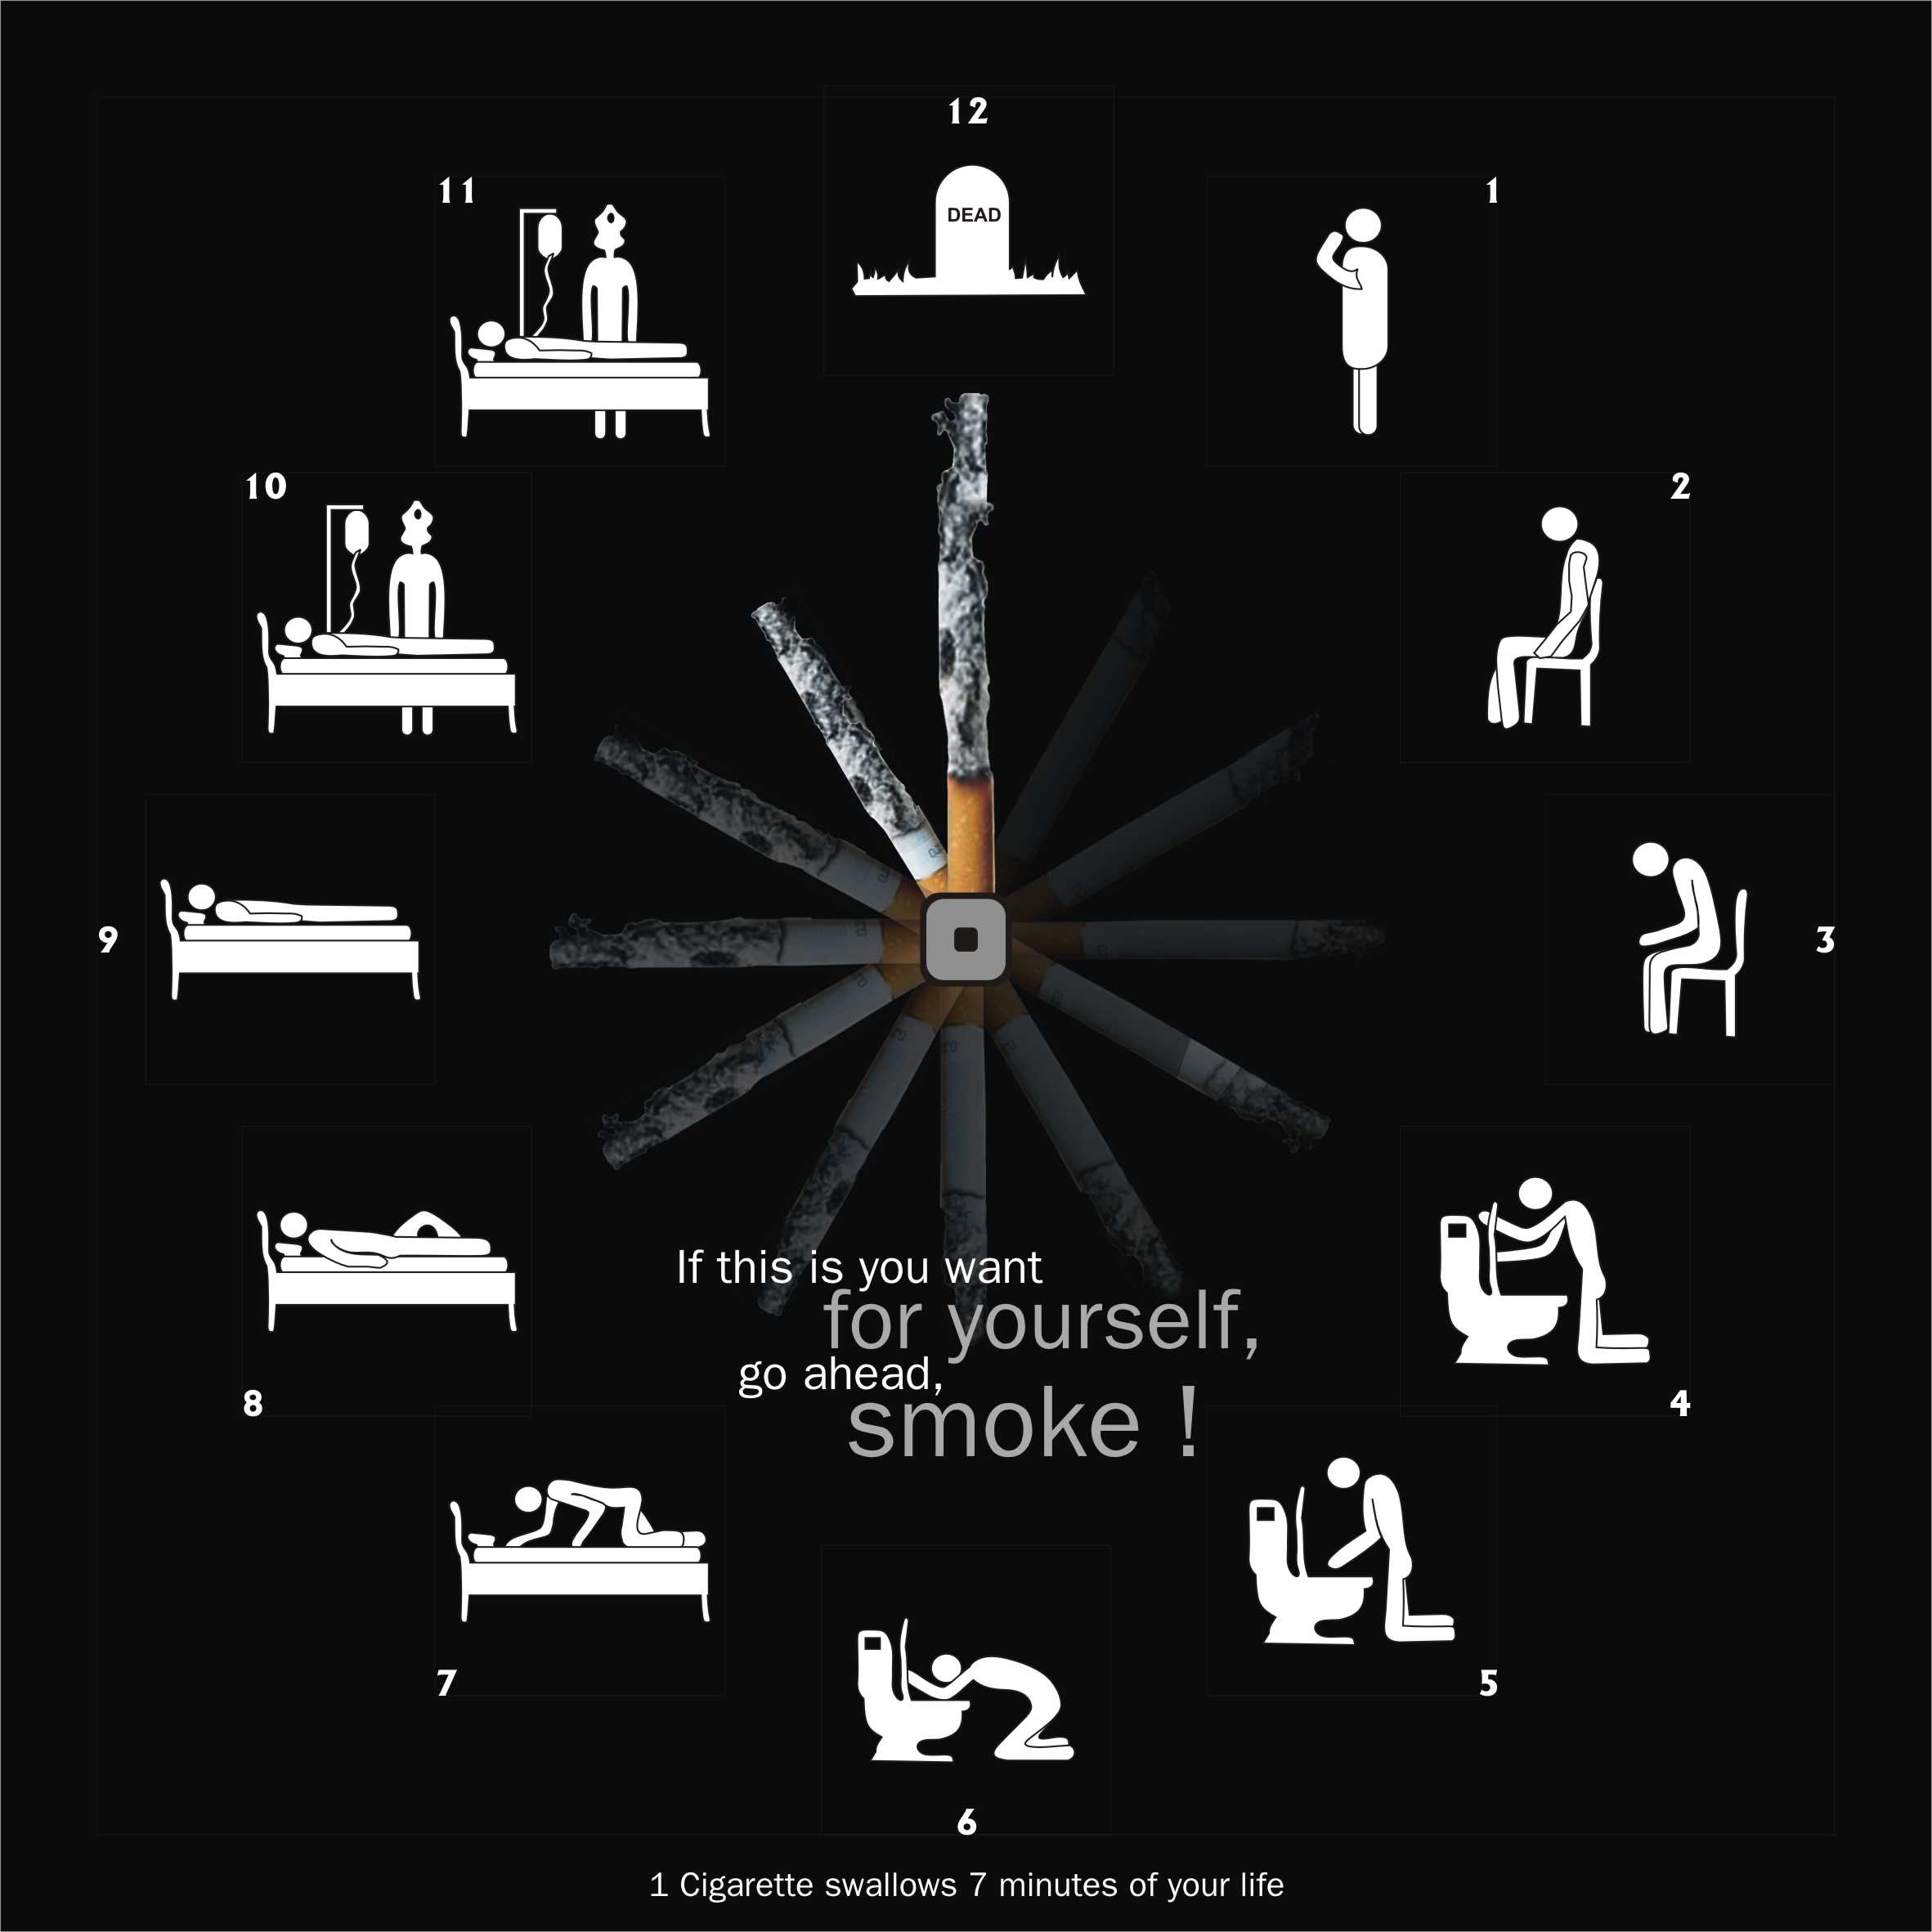 download no smoking wallpaper 2363x2363 wallpoper 365570